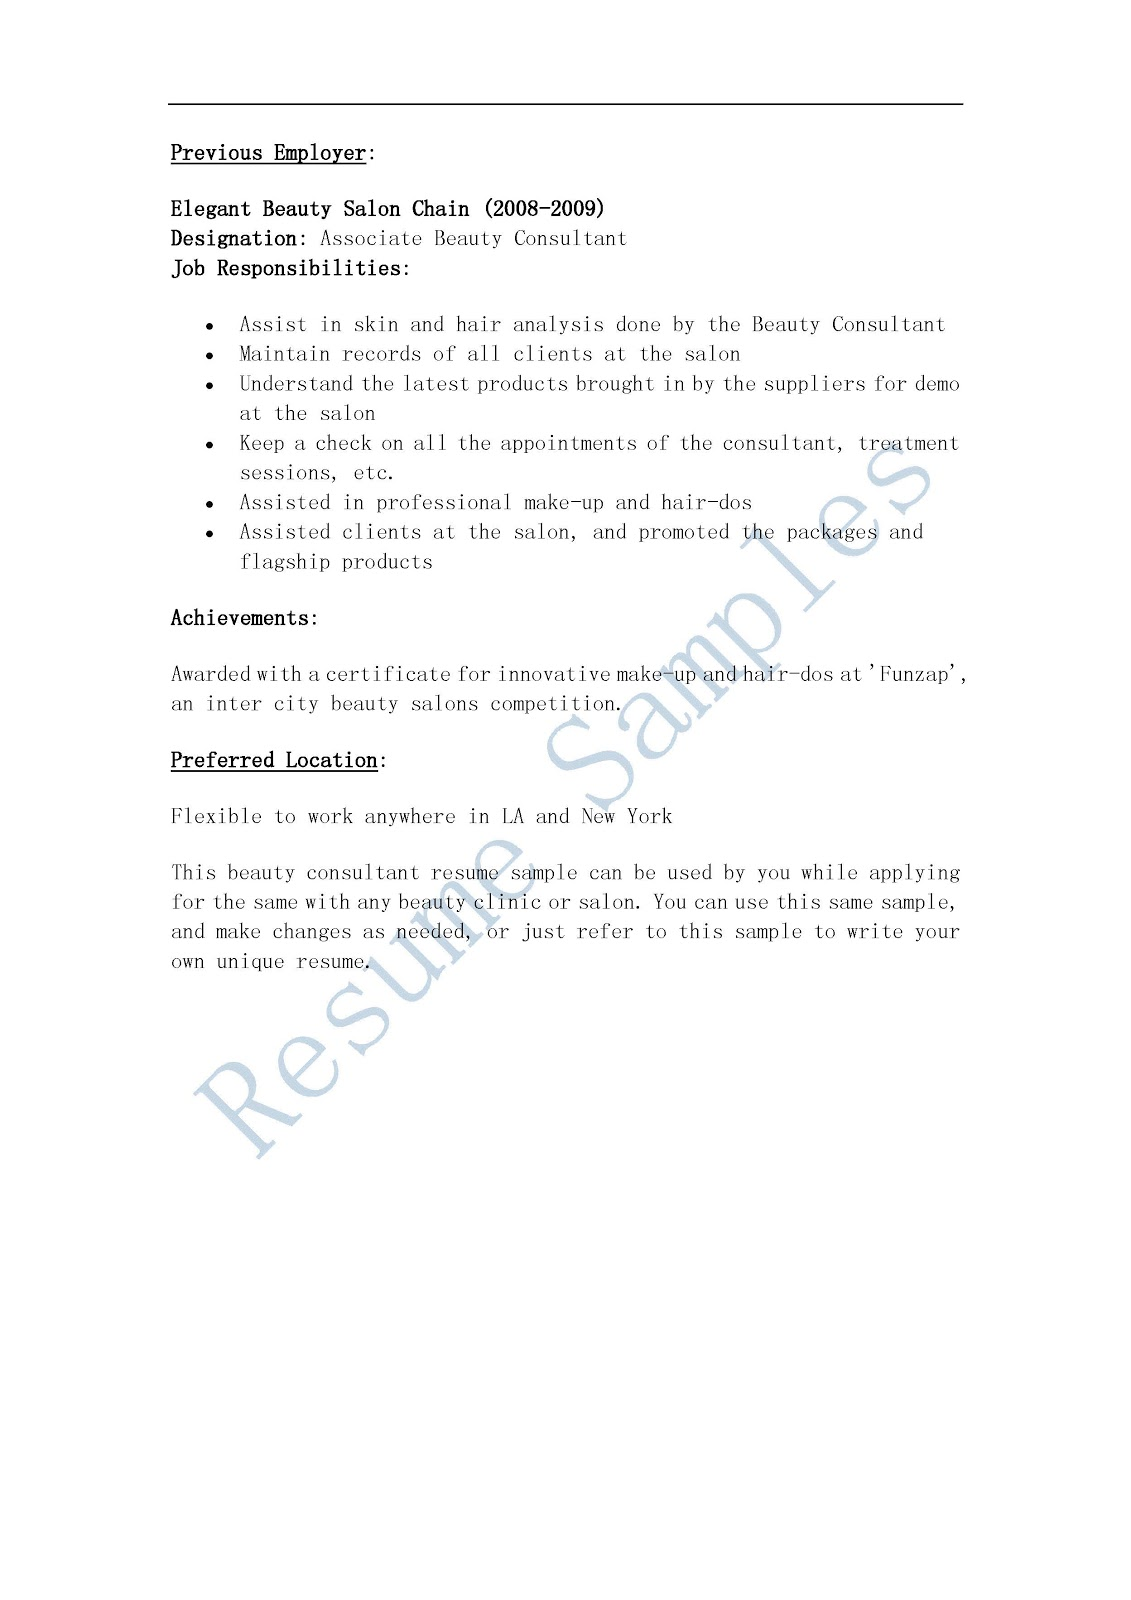 10 Cosmetology Resume Professional   Cosmetology Resume Sample  Beauty Advisor Resume